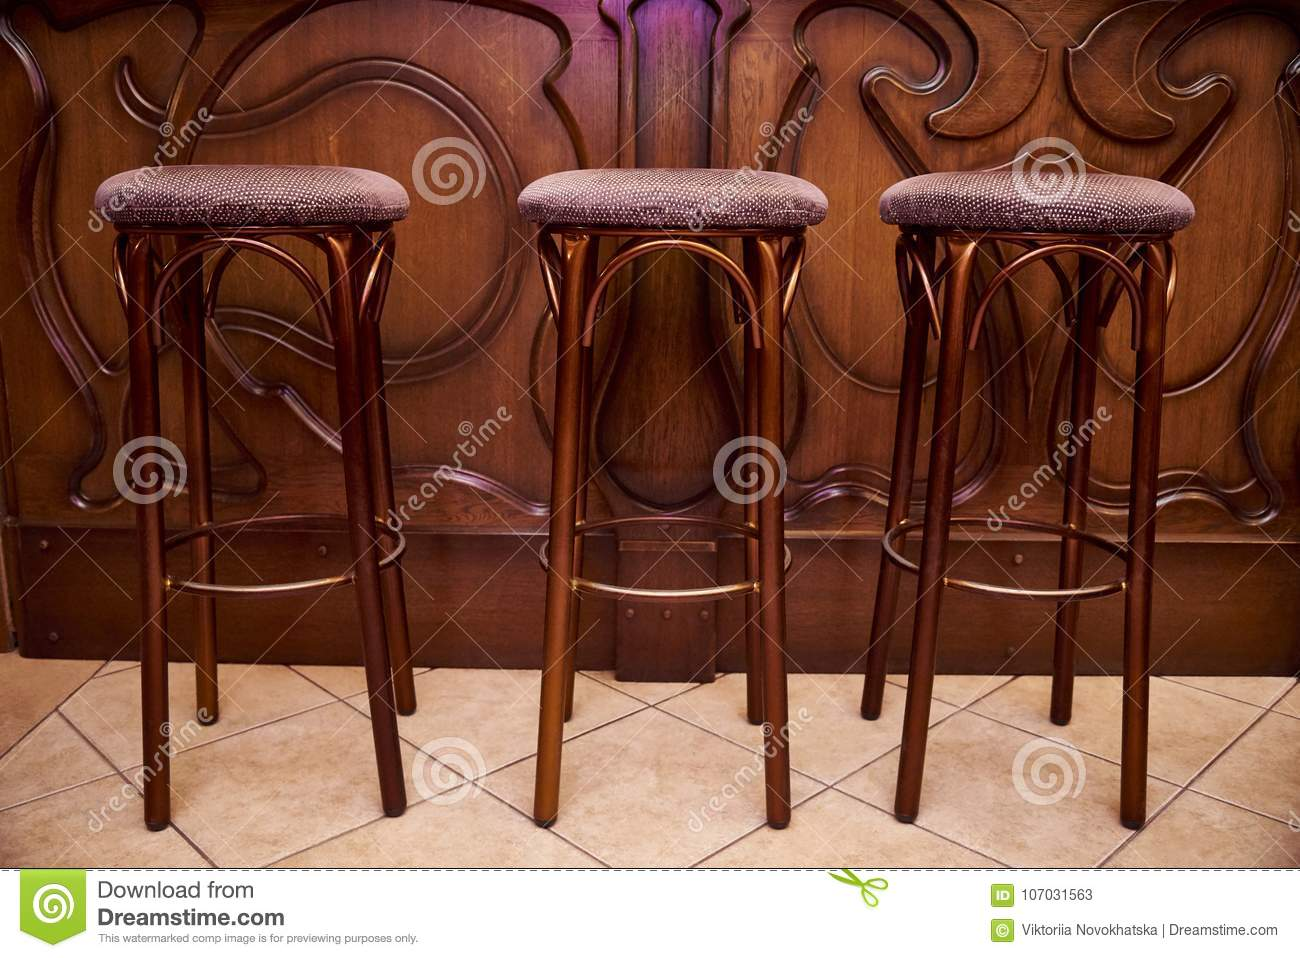 Emeco in bar stools for sale ebay